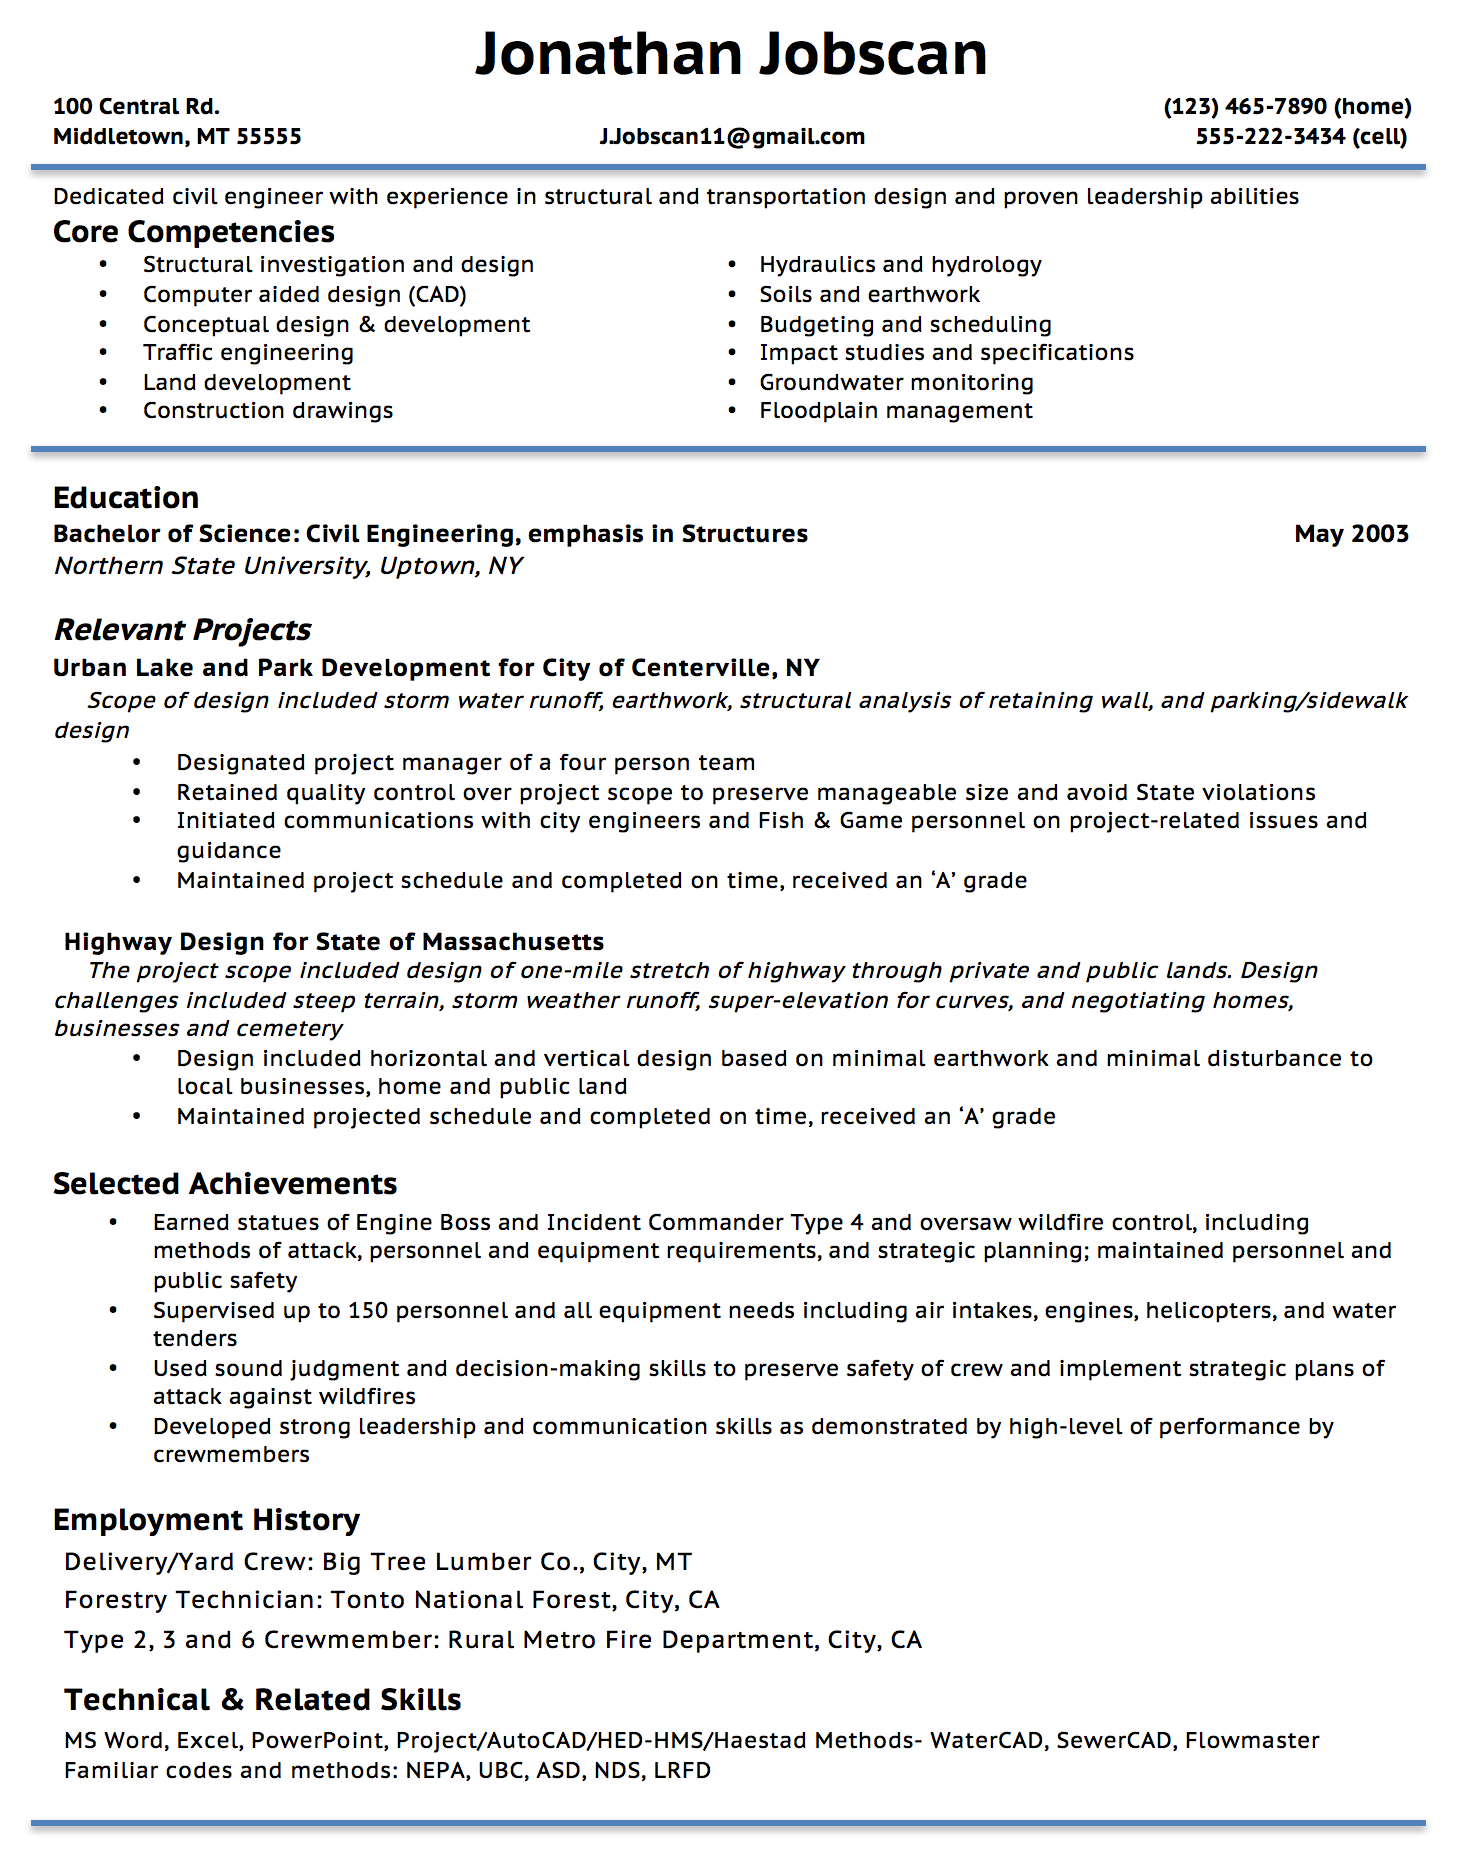 Picnictoimpeachus  Splendid Resume Writing Guide  Jobscan With Magnificent Example Of A Functional Resume Format With Beautiful Bank Teller Responsibilities Resume Also Resume Guidance In Addition Architect Resume Sample And Create My Own Resume As Well As Resume Title Names Additionally Program Manager Resumes From Jobscanco With Picnictoimpeachus  Magnificent Resume Writing Guide  Jobscan With Beautiful Example Of A Functional Resume Format And Splendid Bank Teller Responsibilities Resume Also Resume Guidance In Addition Architect Resume Sample From Jobscanco